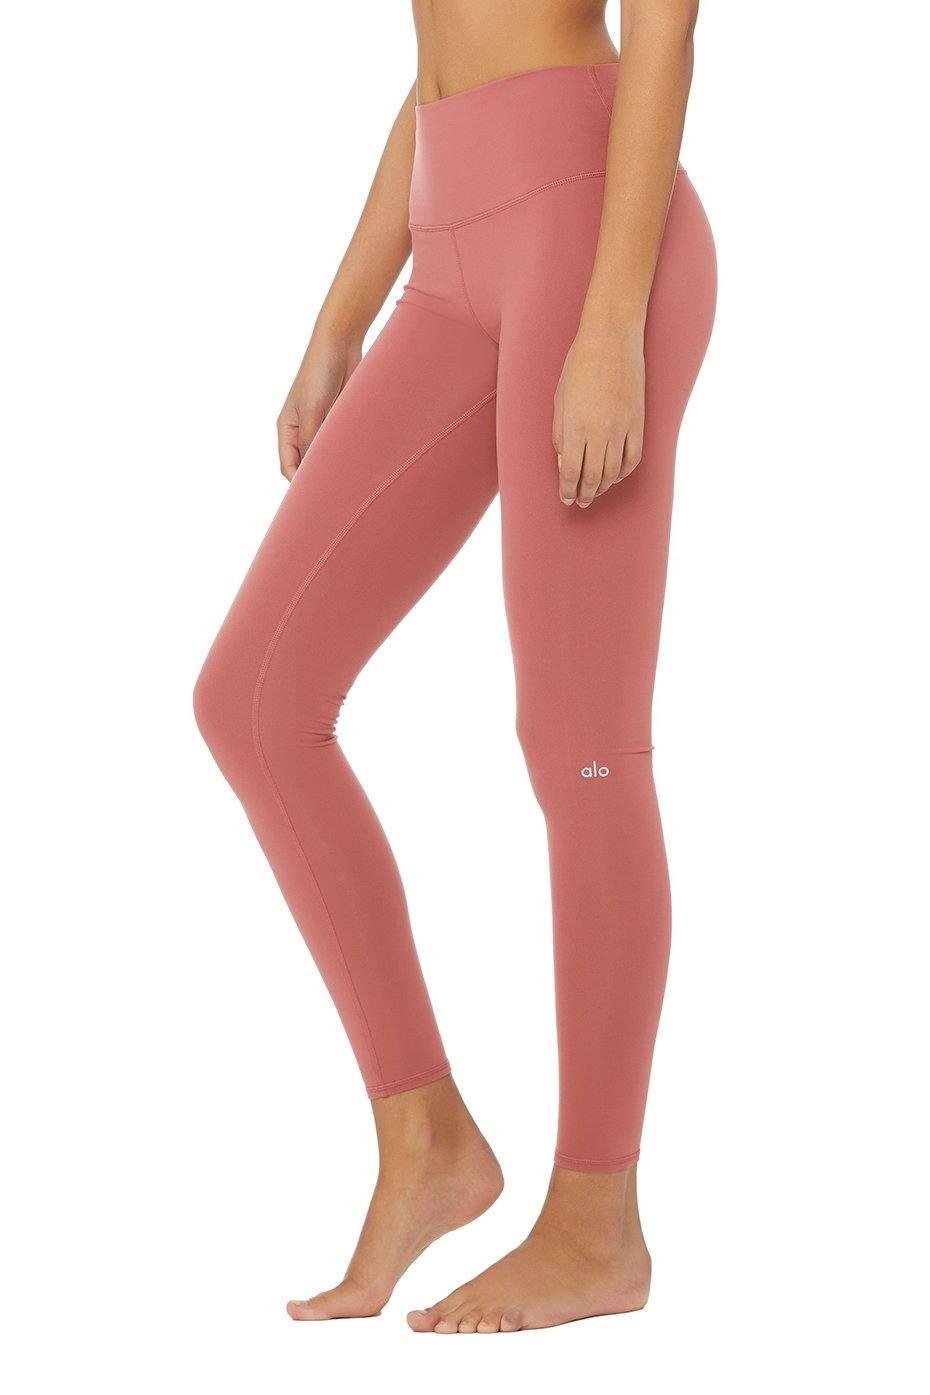 7577089fa0f1a Alo | High-Waist Airbrush Legging